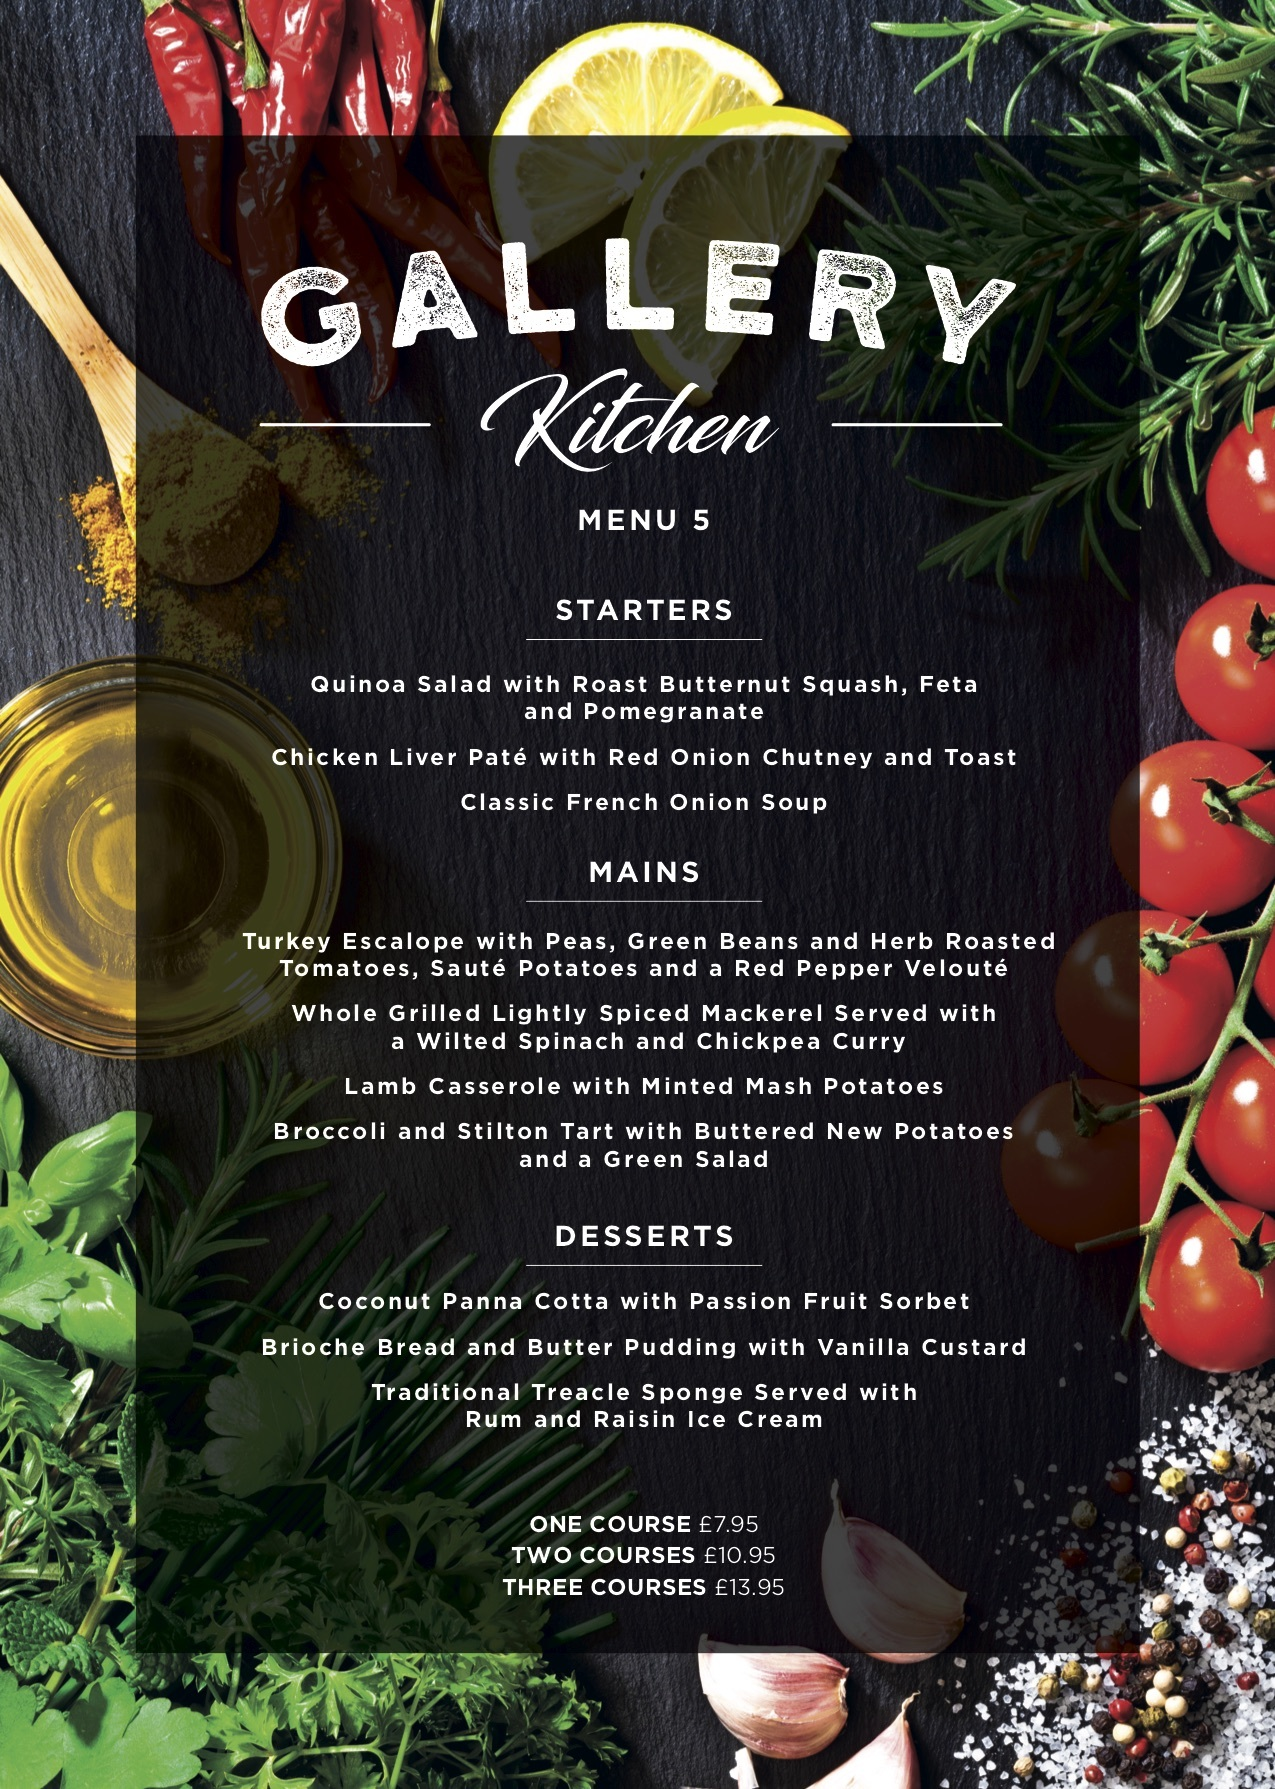 Gallery Restaurant Menu 5